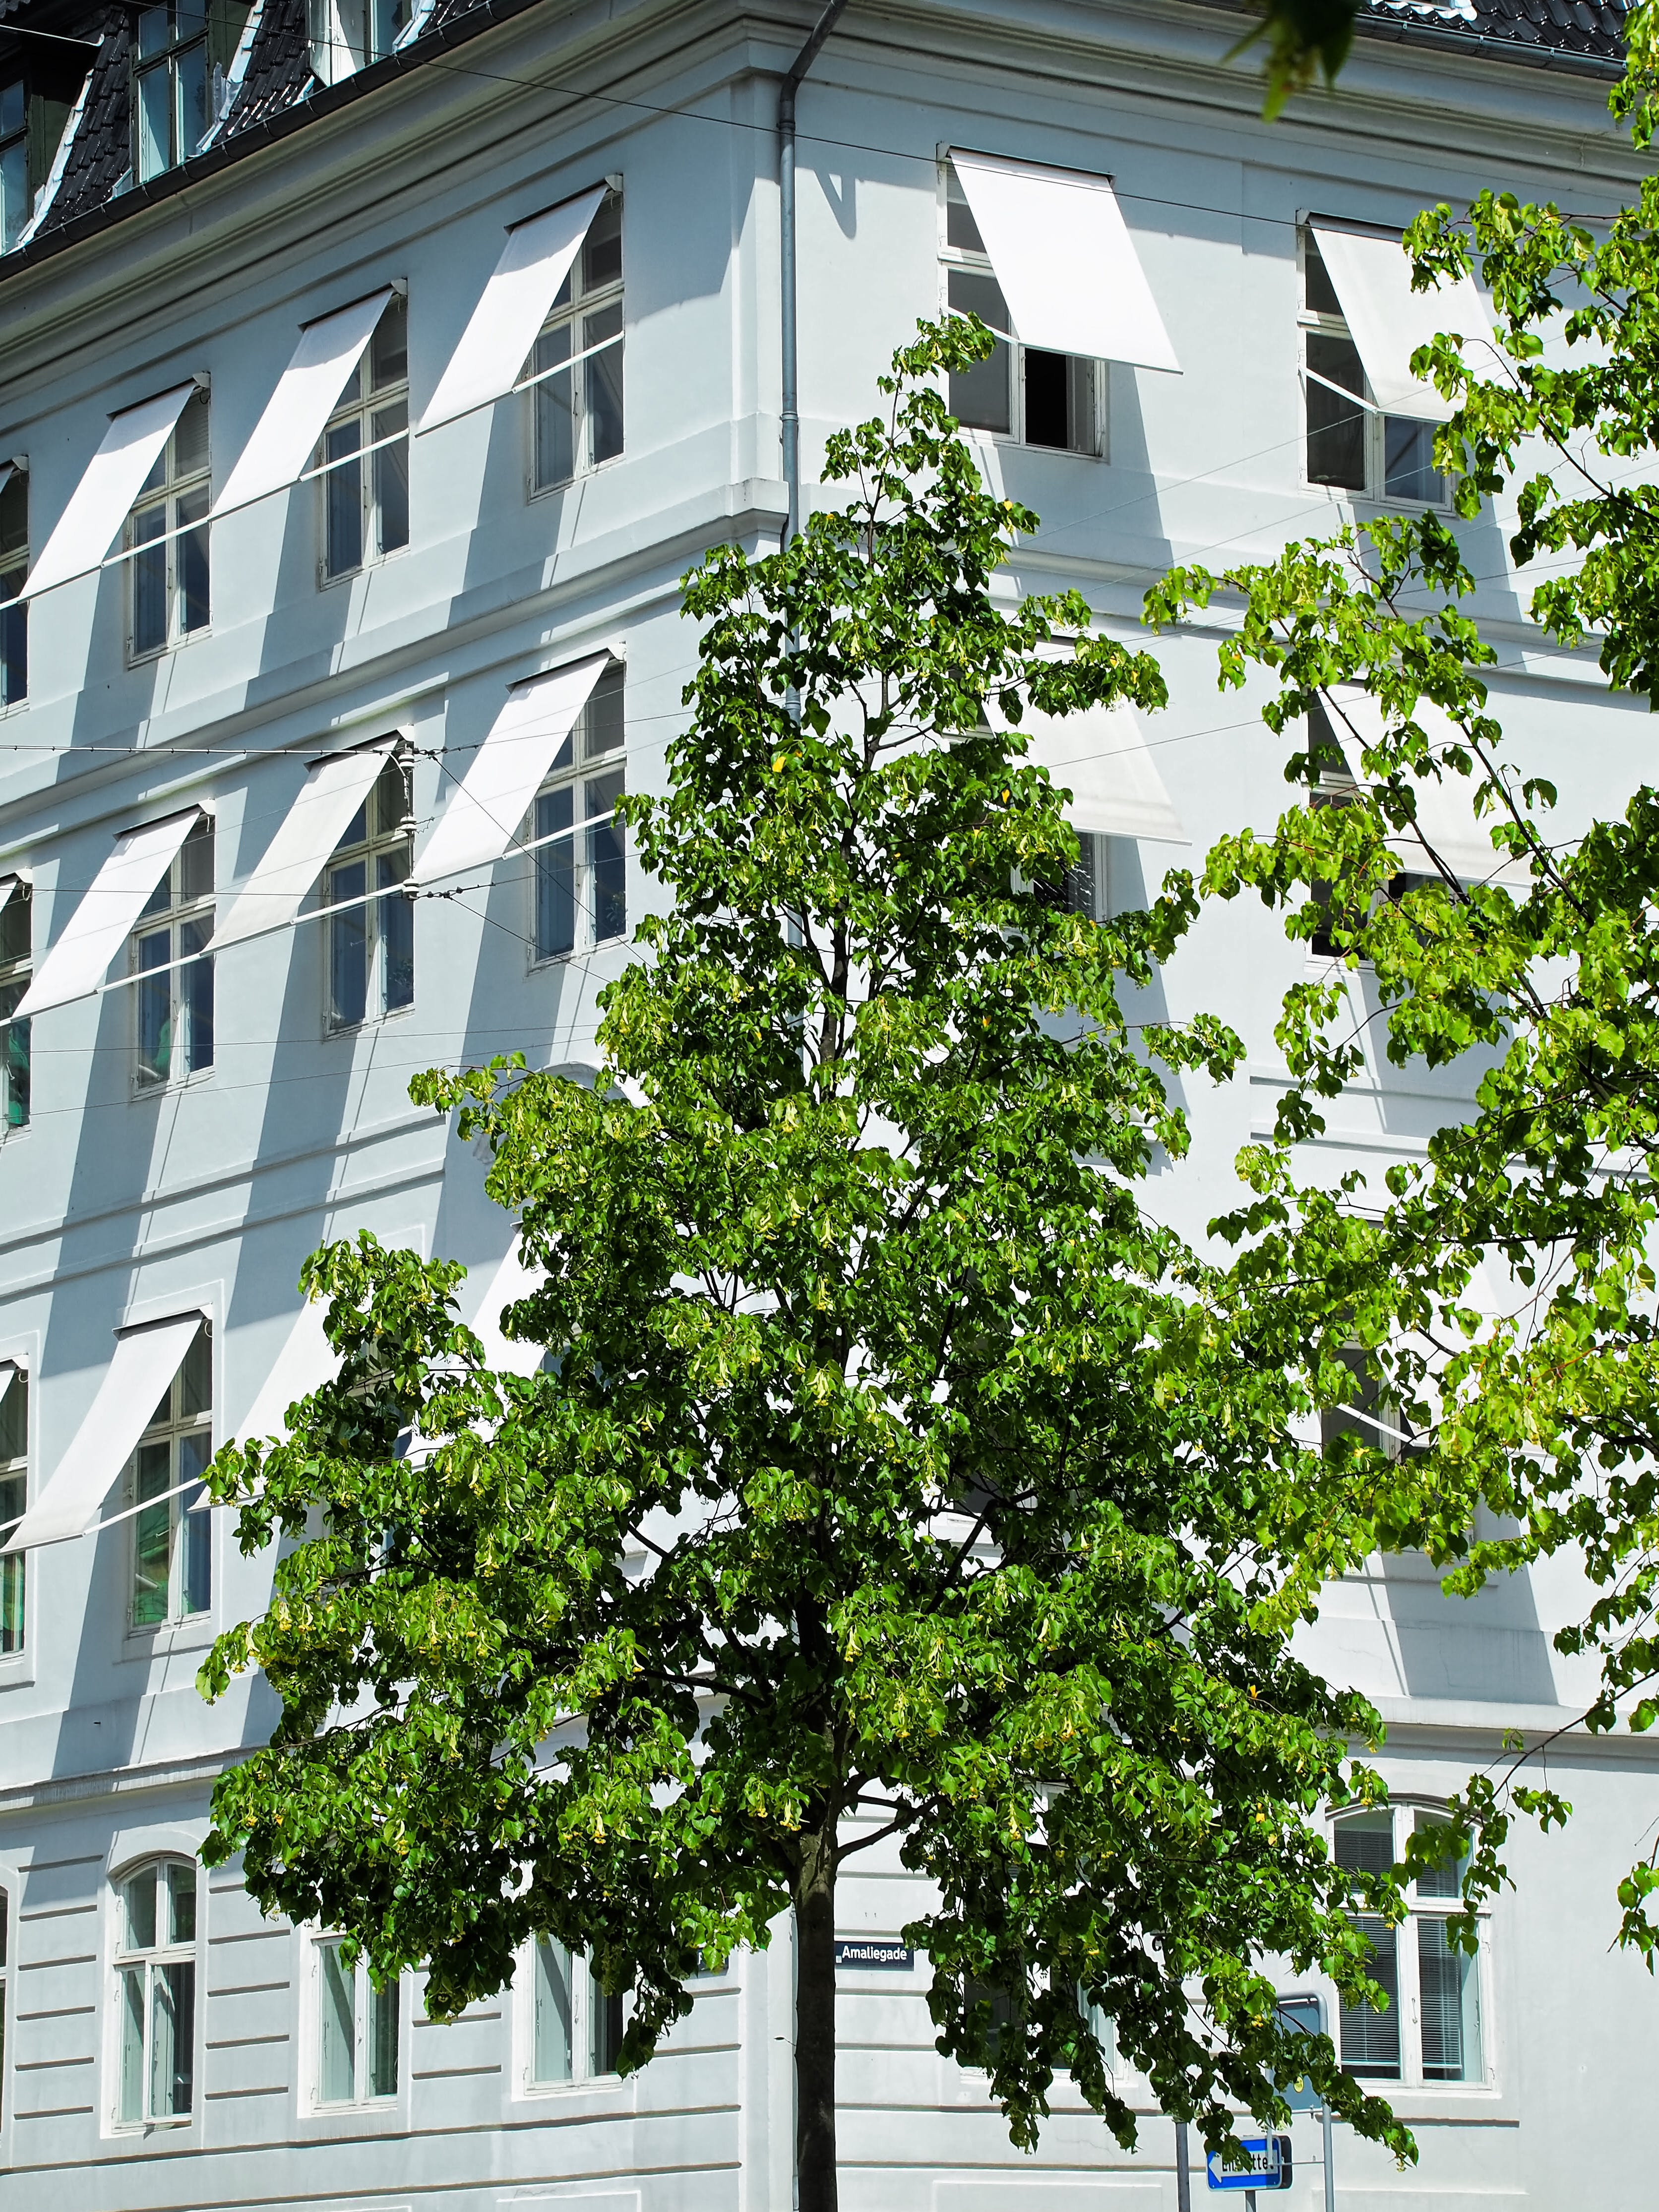 Green Leafed Tree in Front of White Building